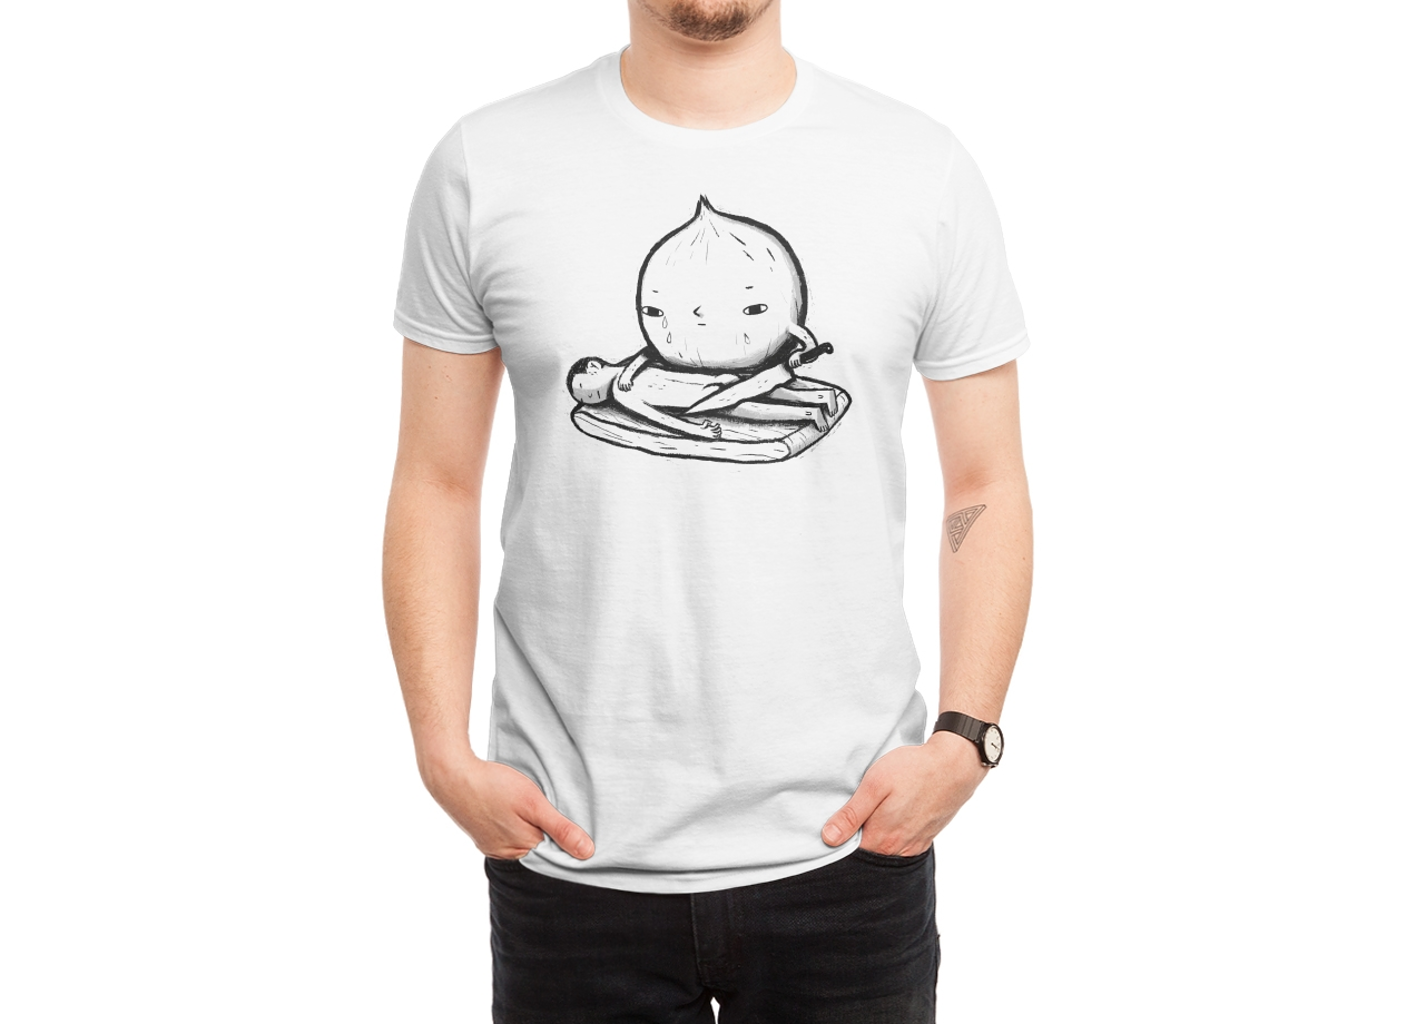 Threadless: onion role reversal